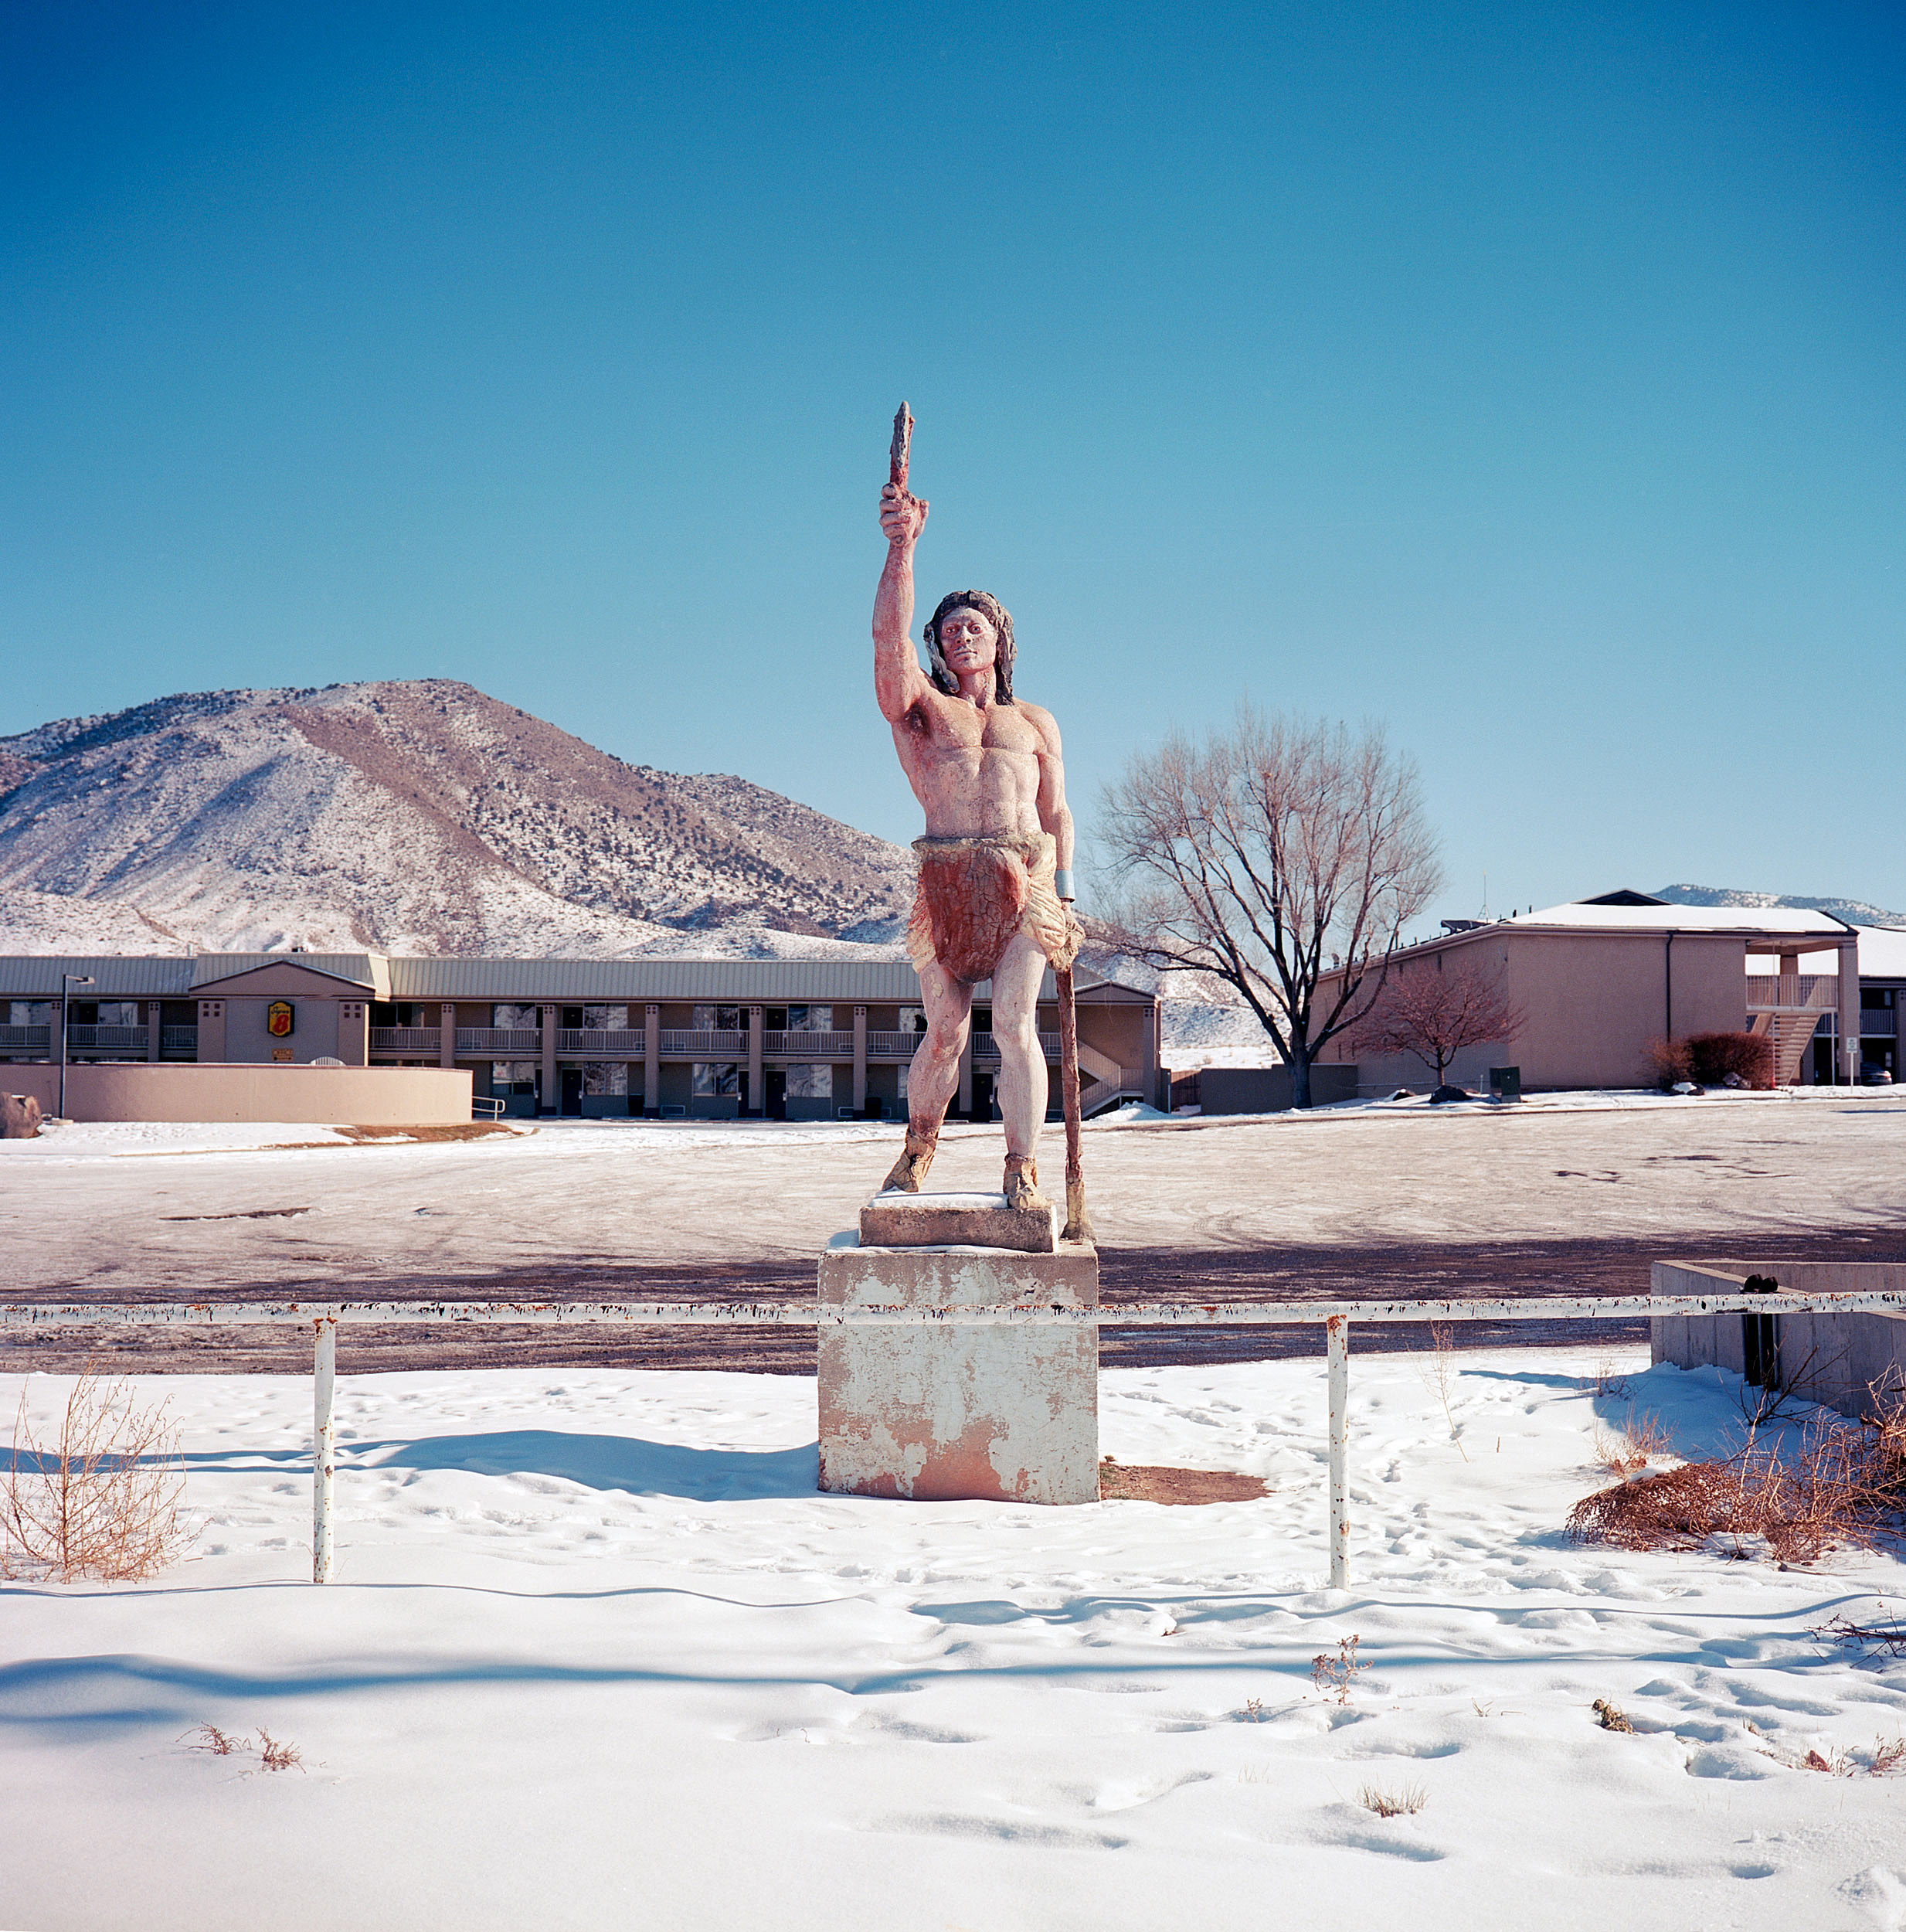 A roadside Native American statue in Salina, Utah. The statue used to be a slave holding a cup, but was rebuilt sometime between 2003 and 2004. The cup was changed to an axe, and the slave was transformed into a Native American.